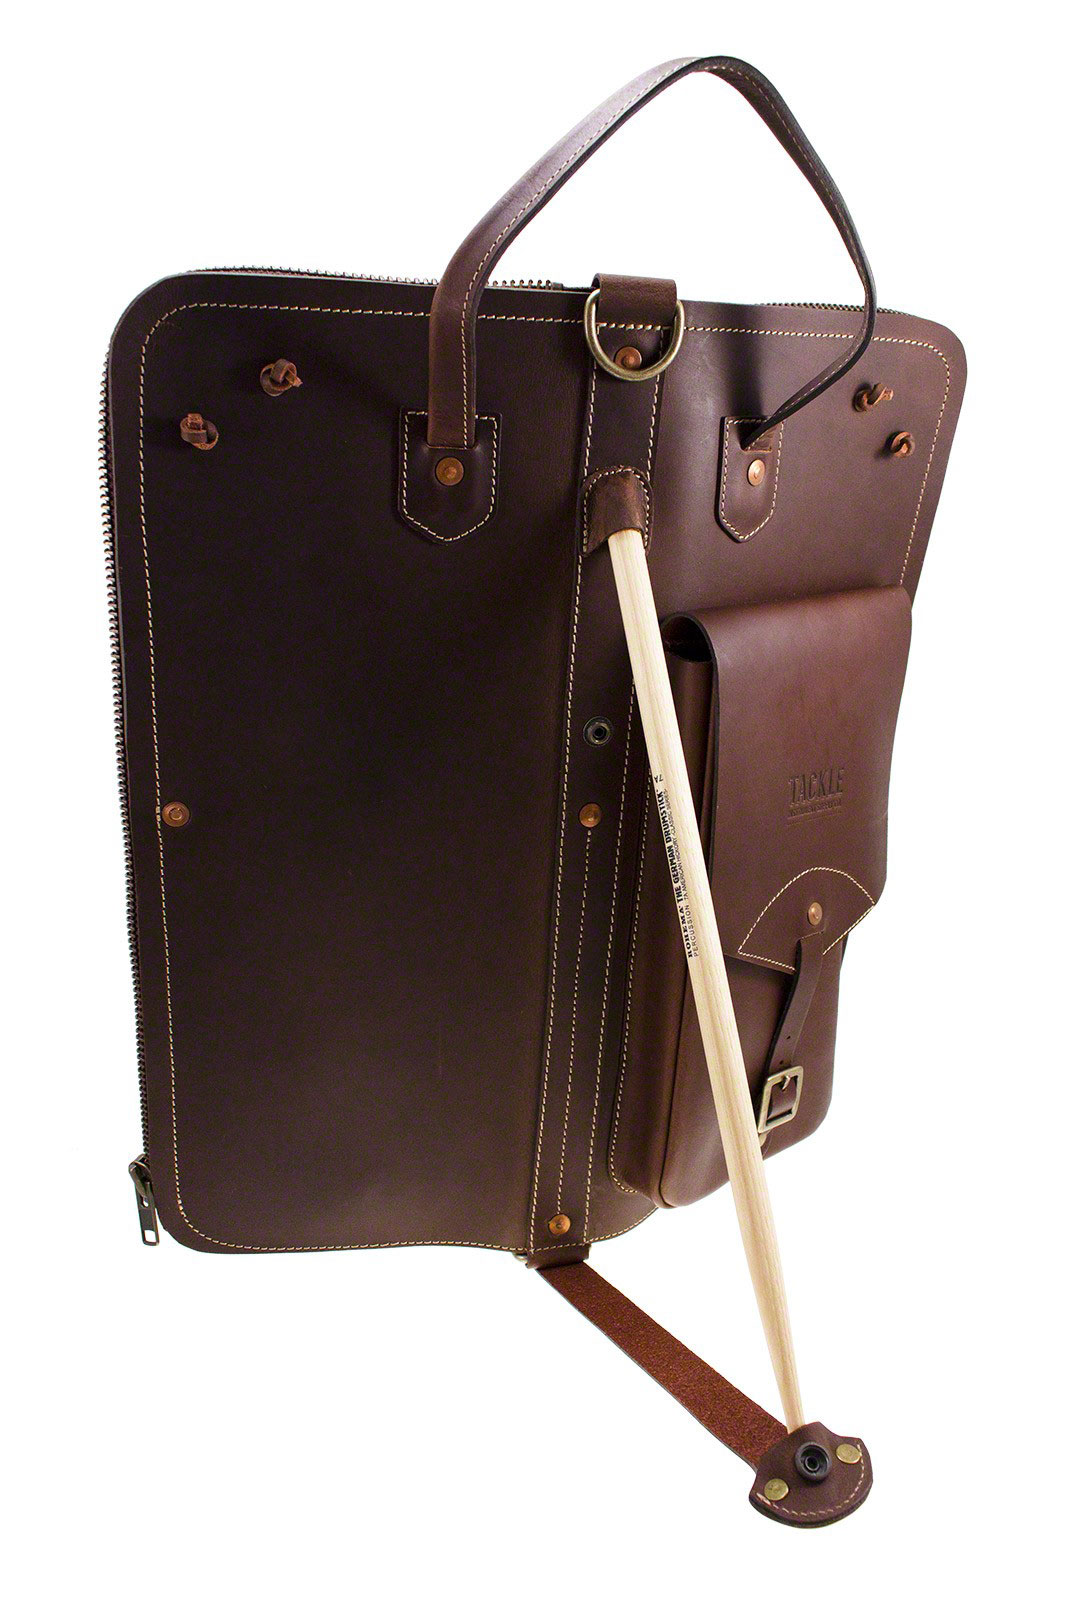 LEATHER STICK CASE - BROWN